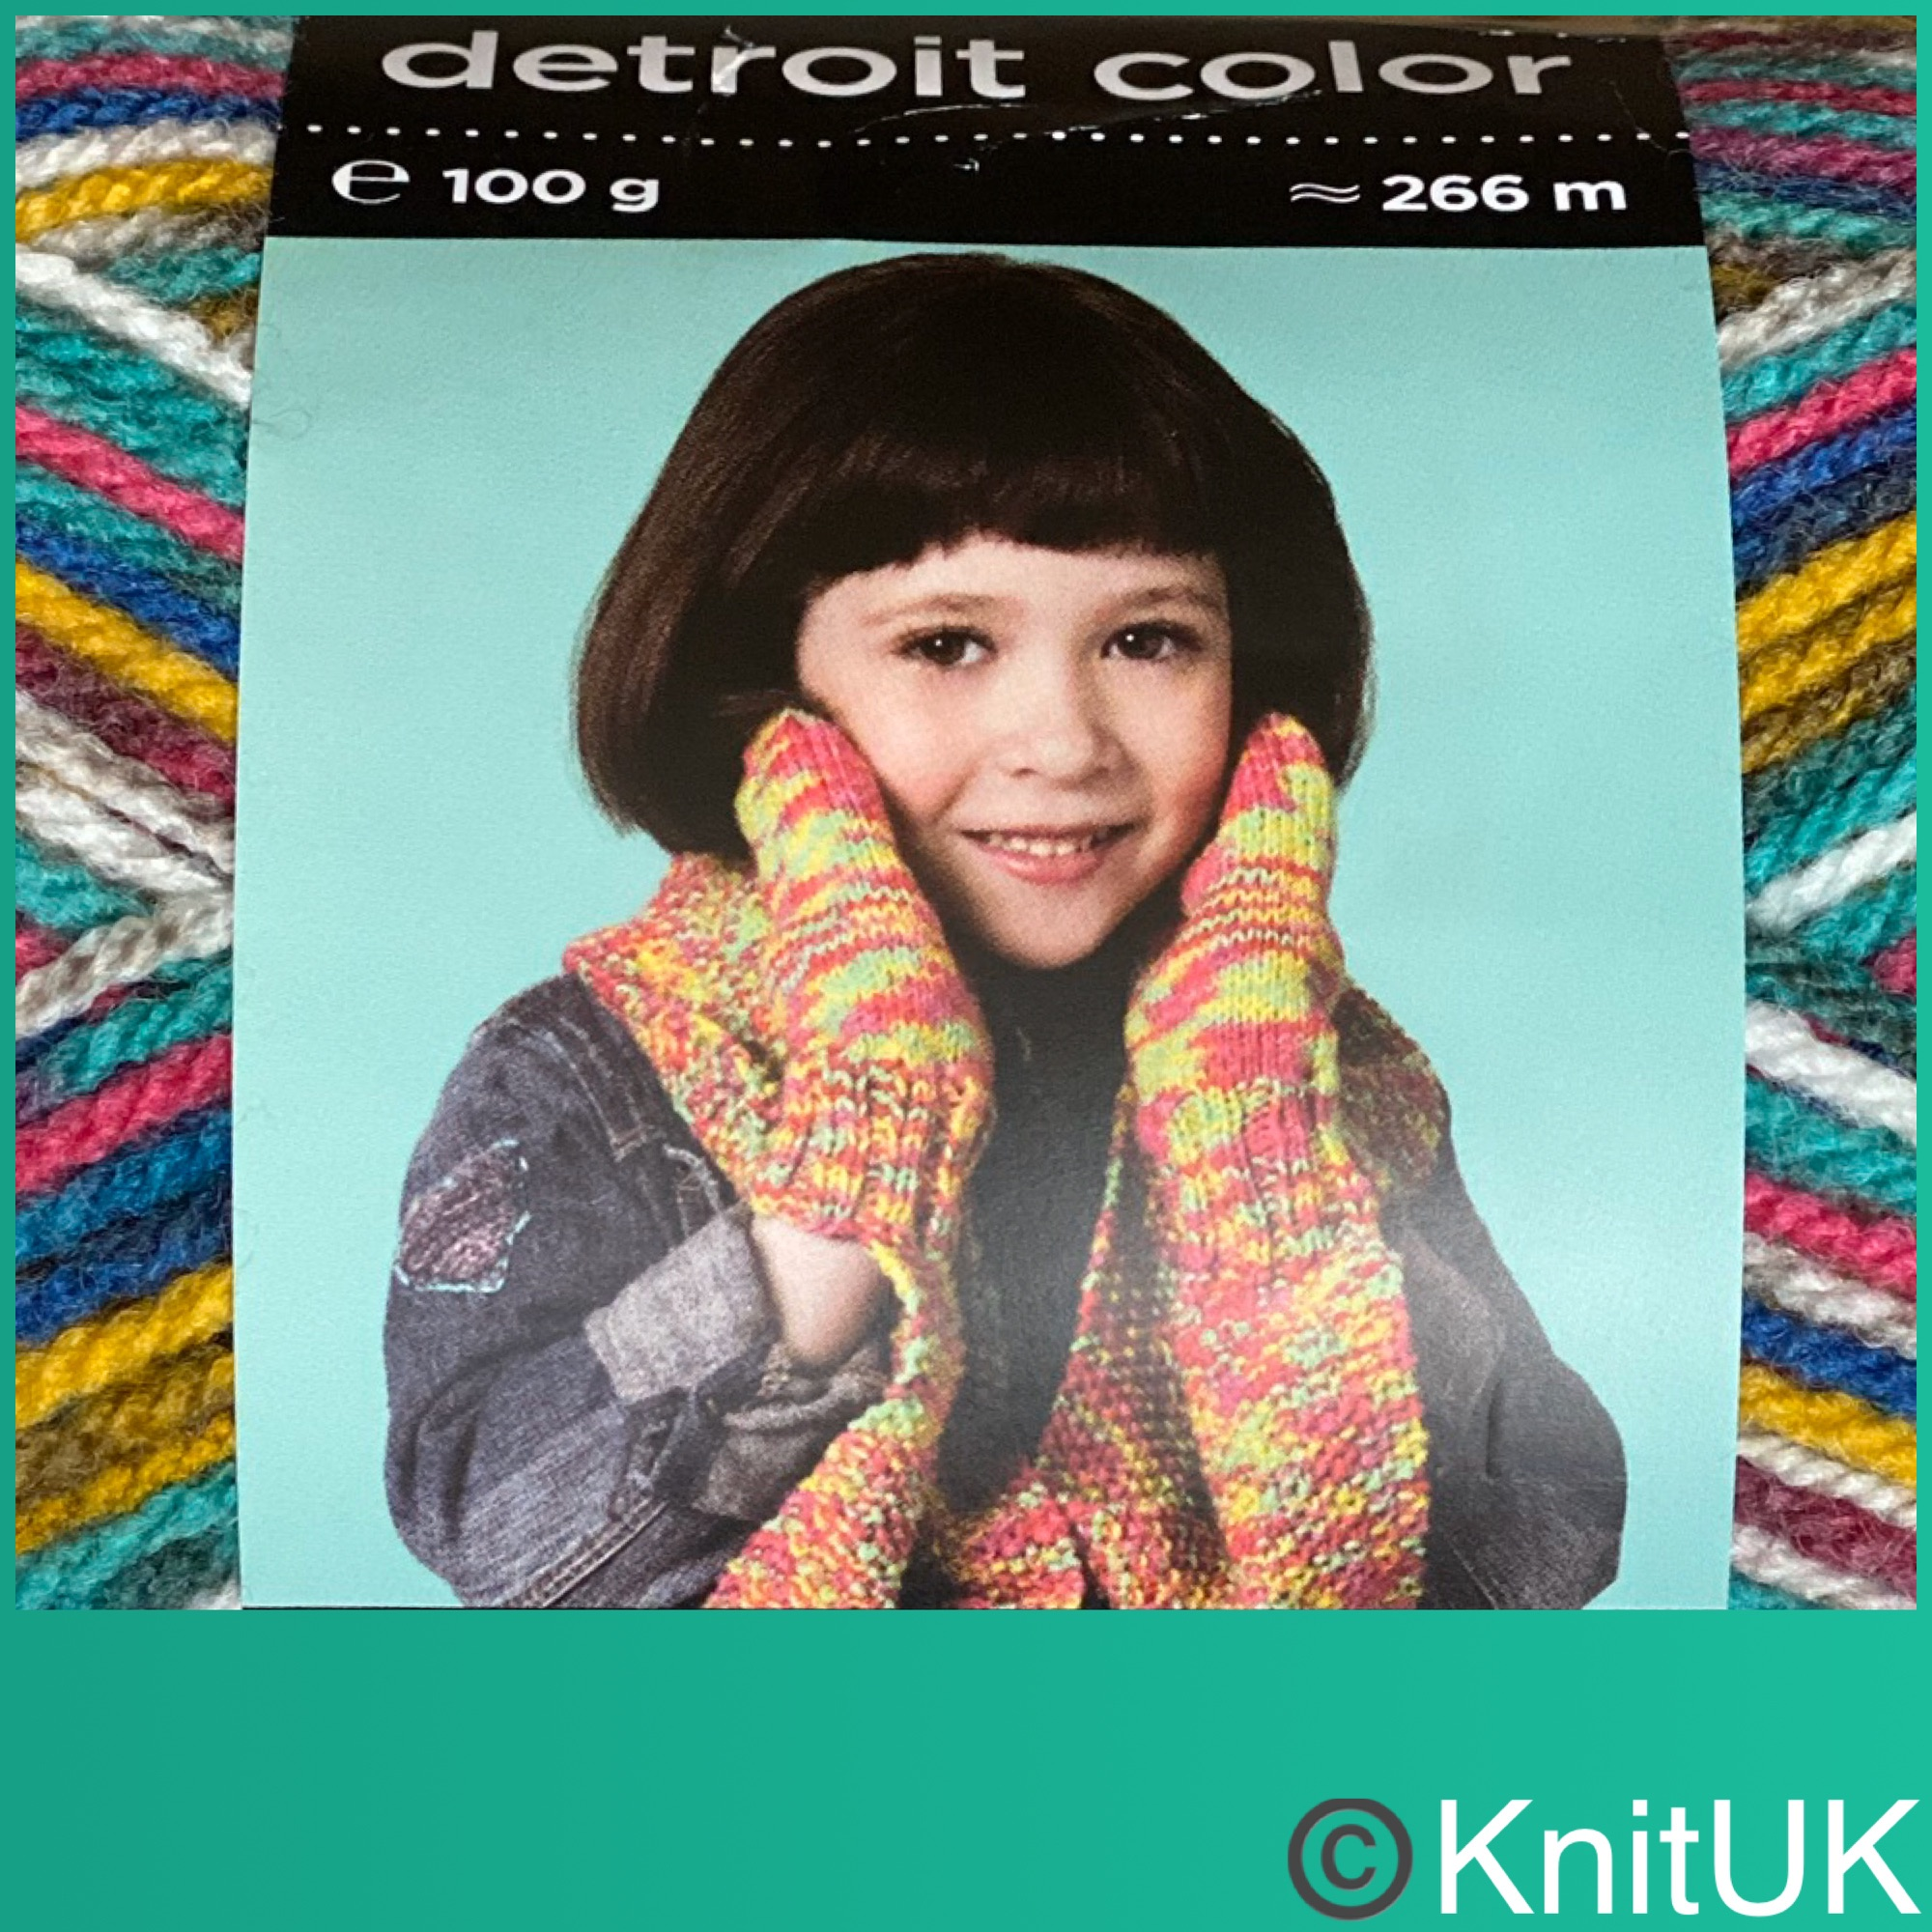 Red heart detroit colour dk yarn variegated patterns picture knitting croch